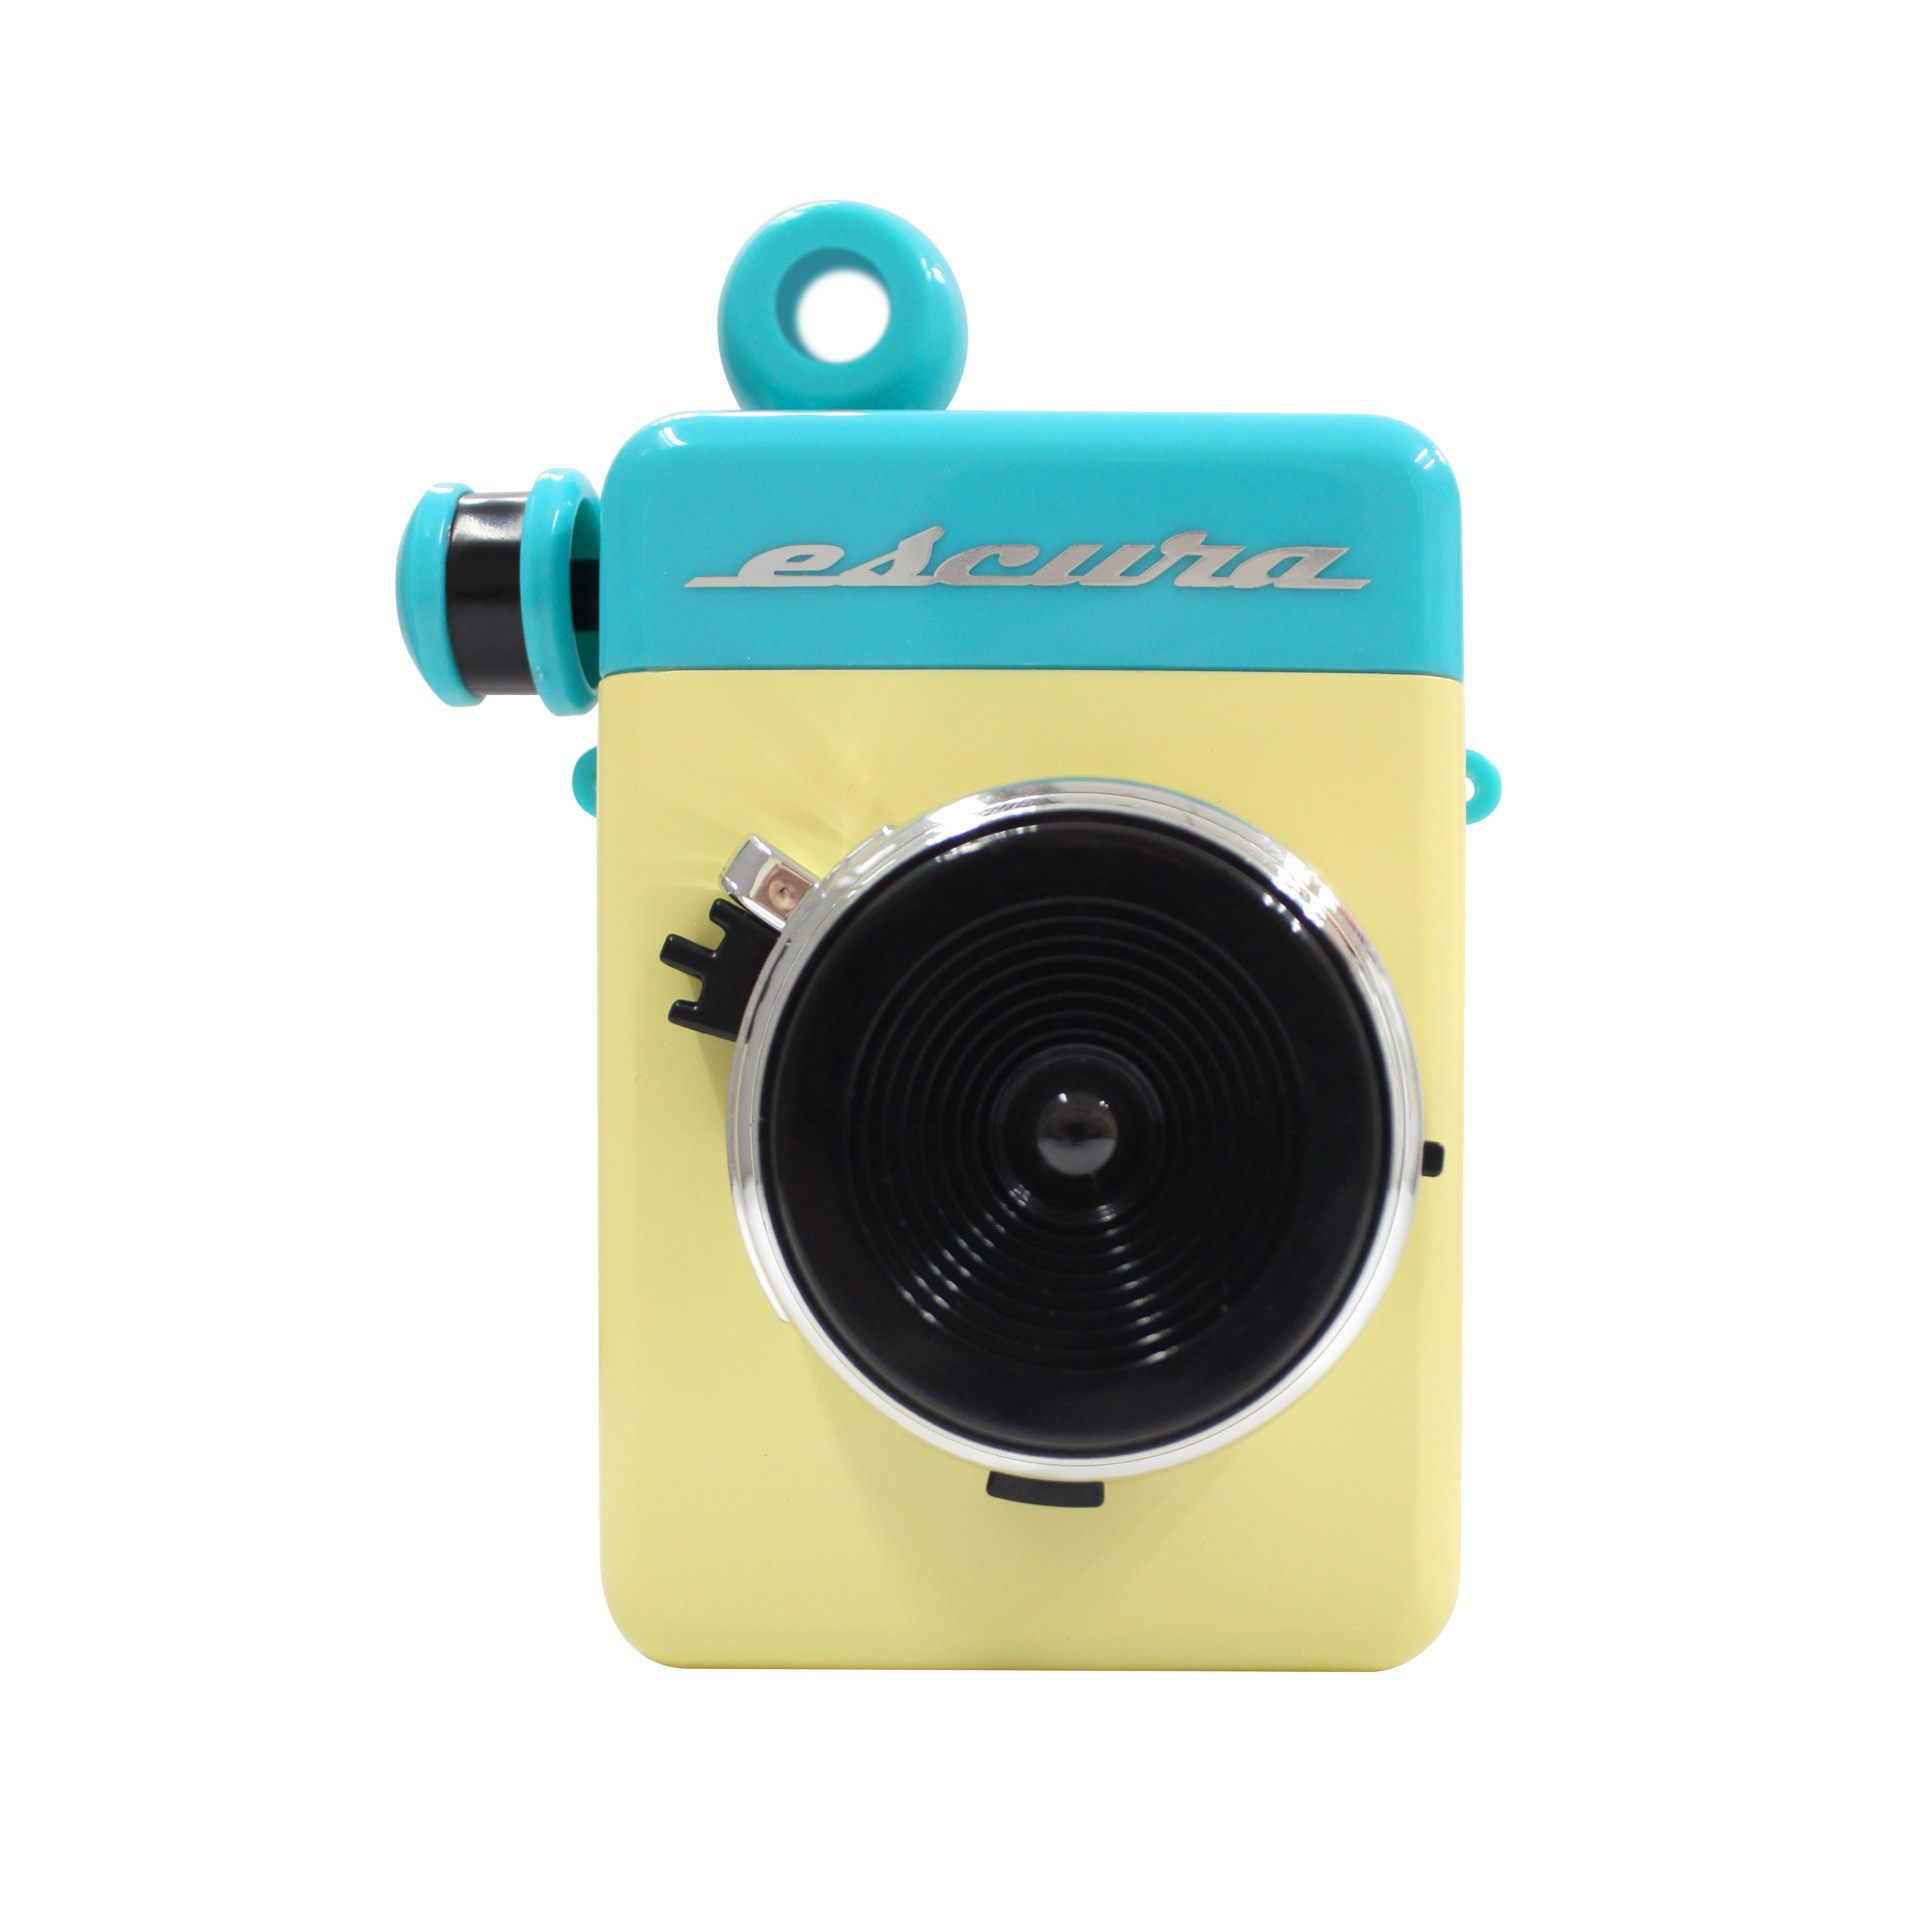 Image of Escura Instant 60s Hand-powered Instant Camera - Blue